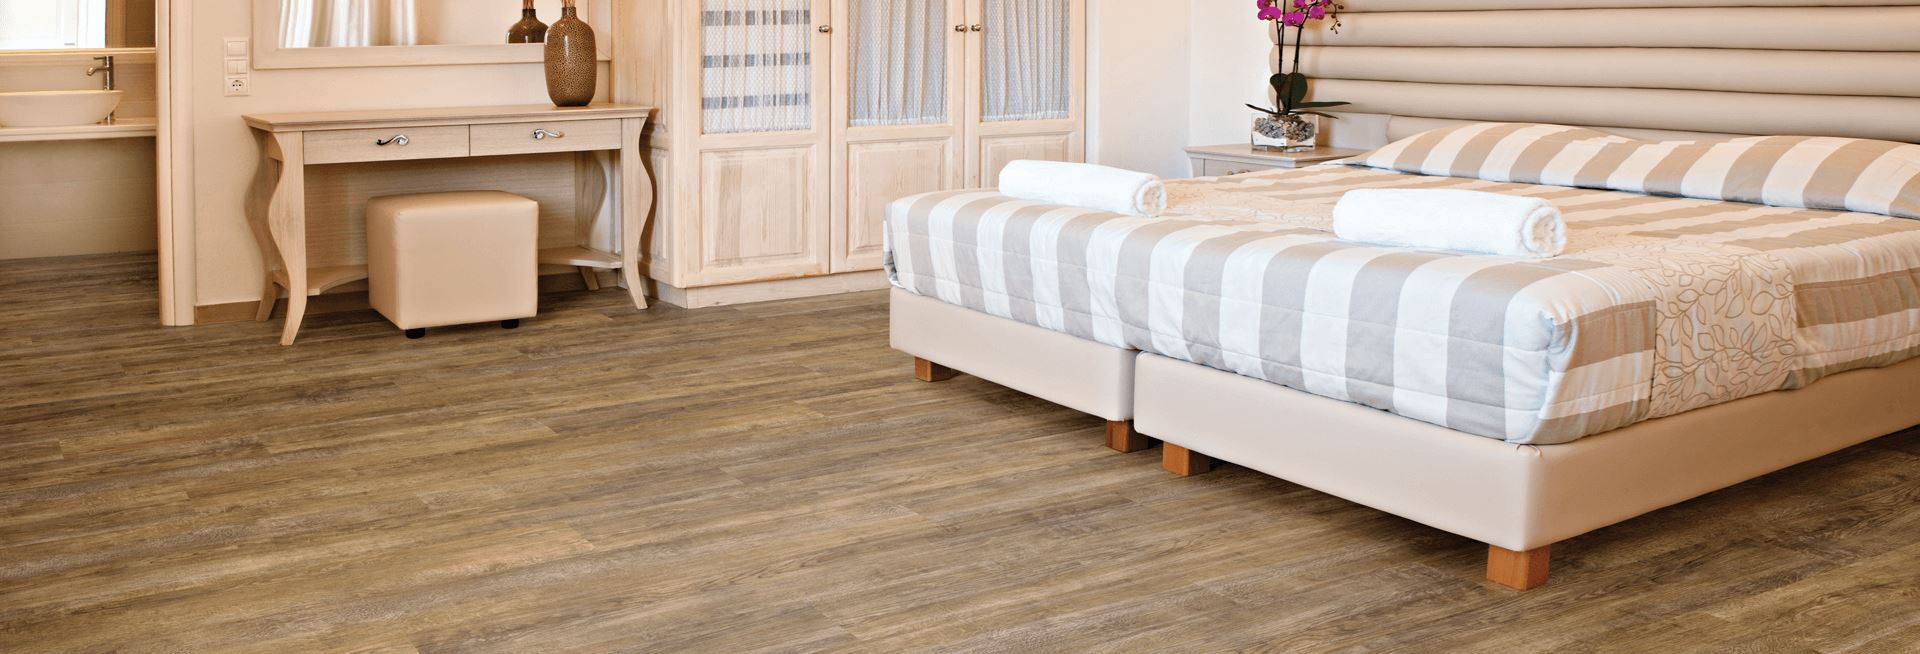 Adore Floors Products Sovereign - Define resilient flooring